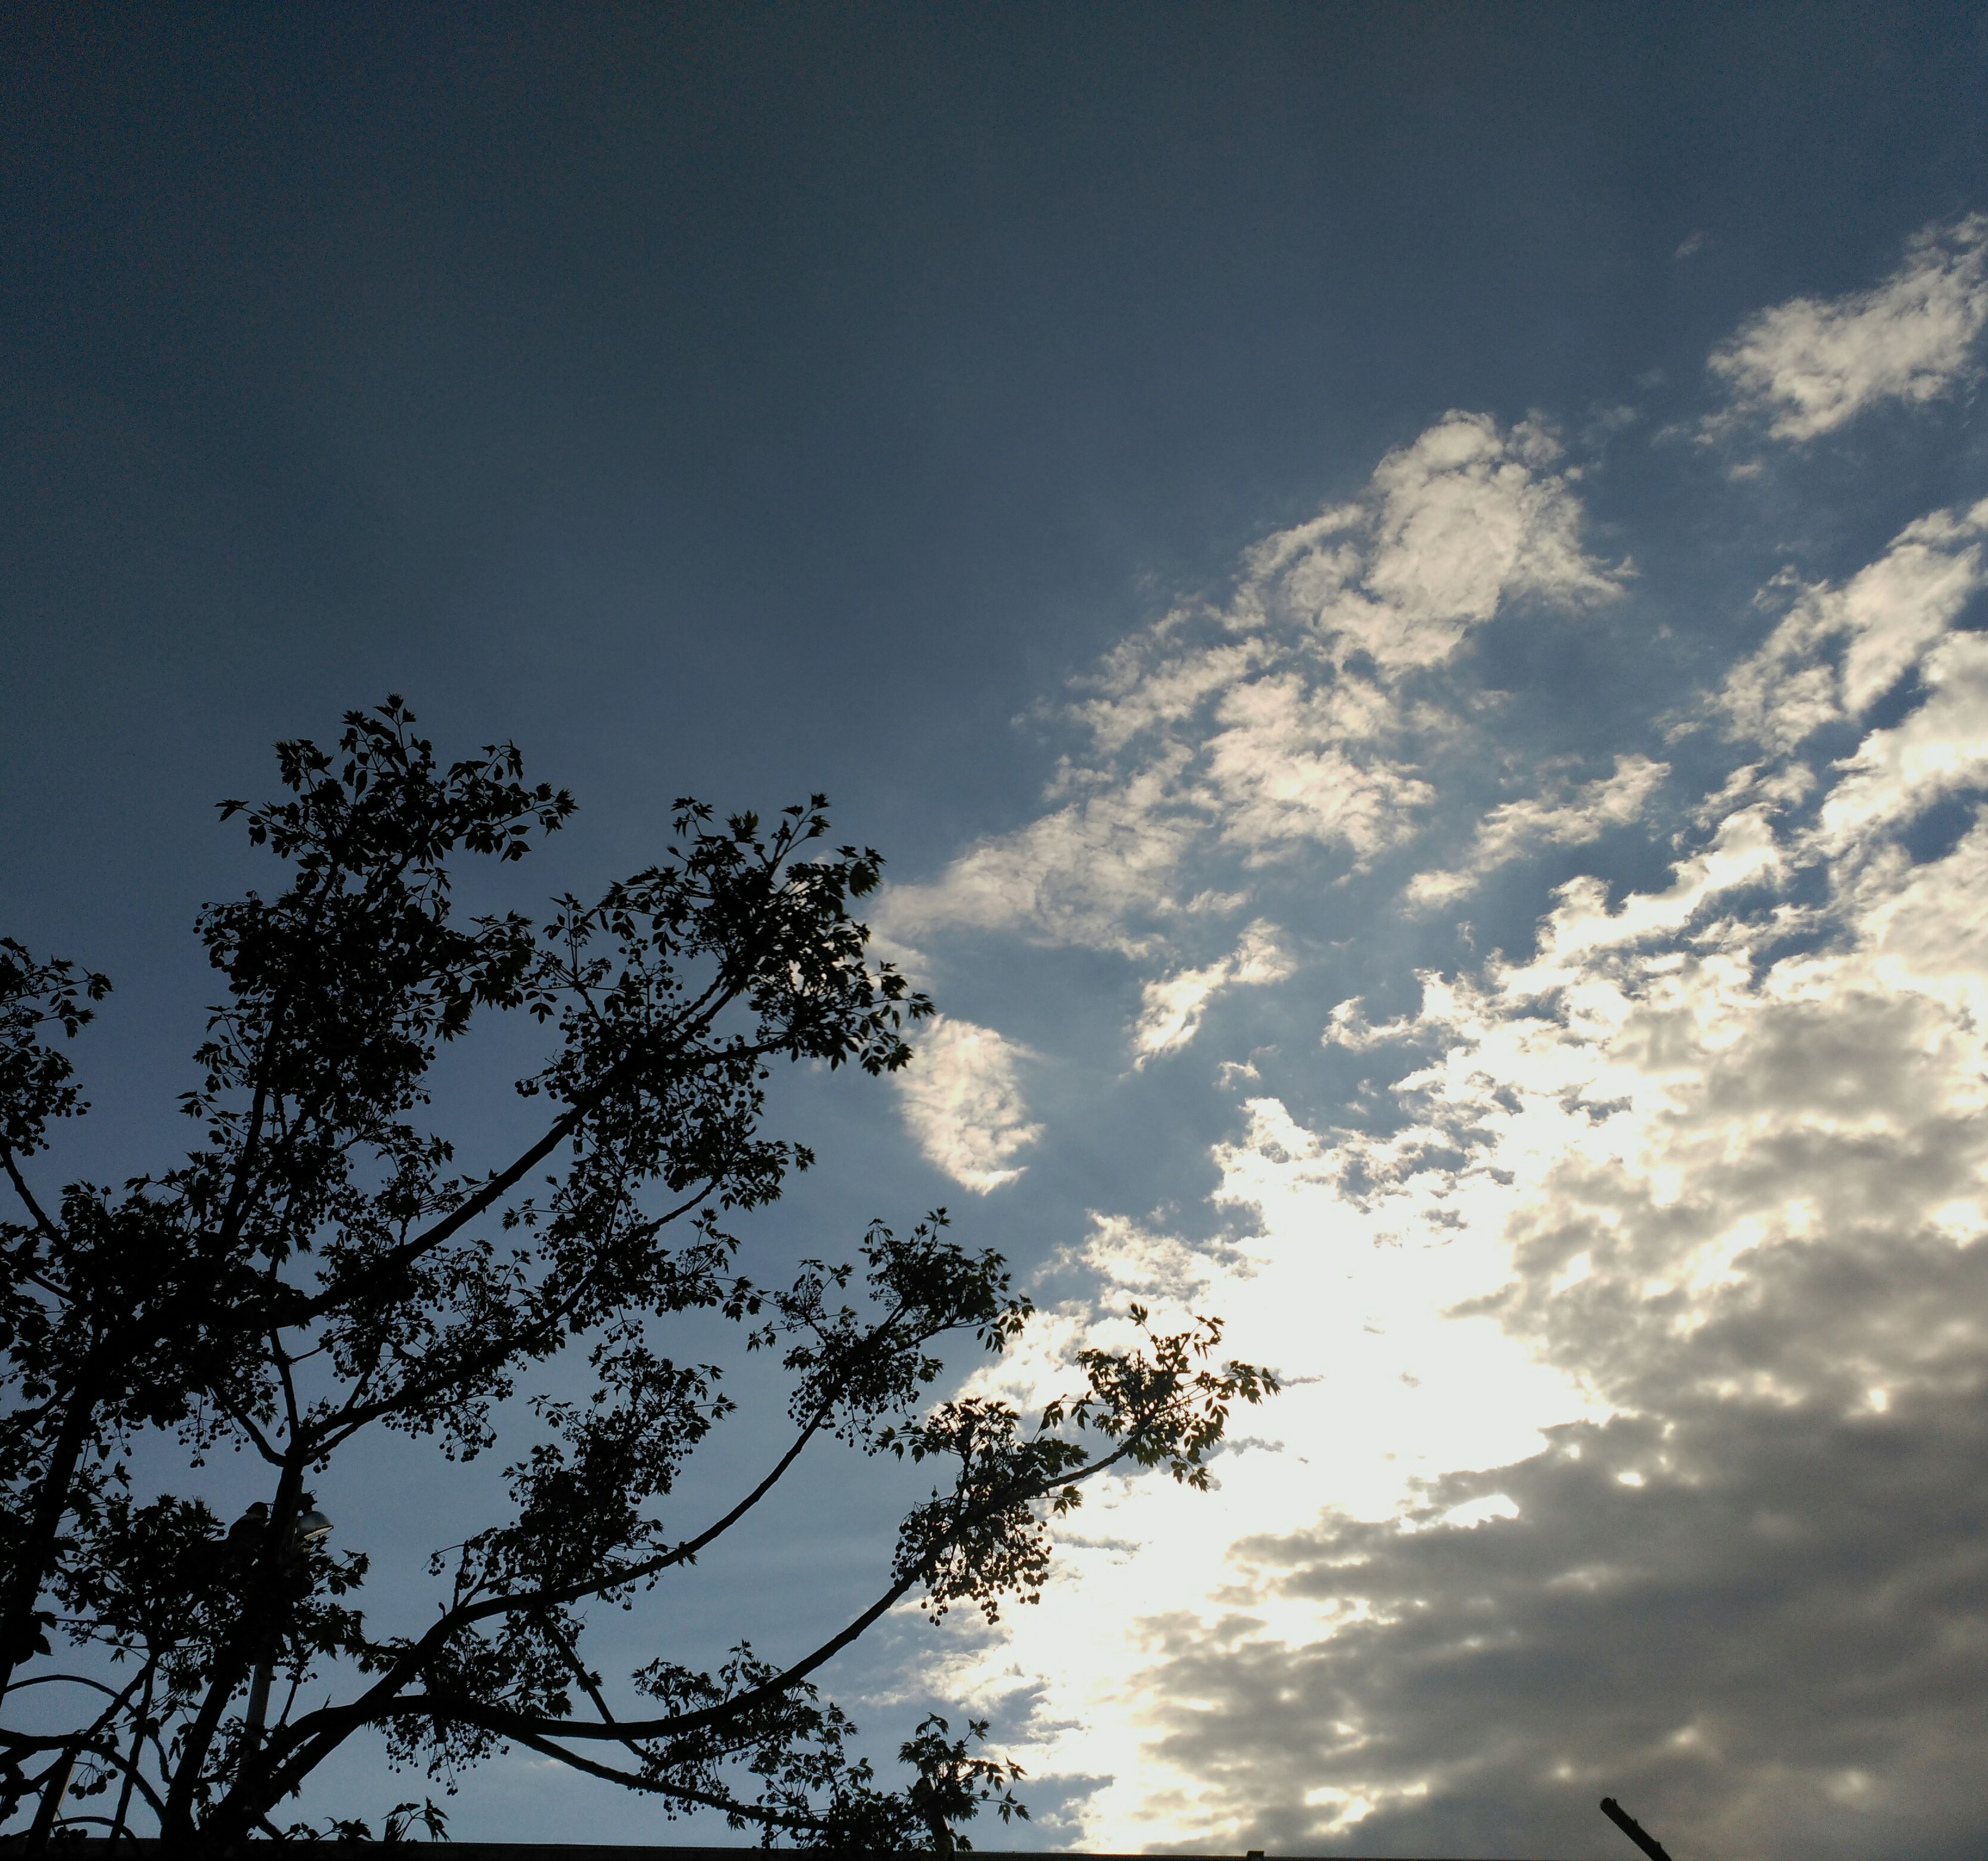 low angle view, tree, sky, nature, no people, beauty in nature, cloud - sky, growth, tranquility, treetop, outdoors, day